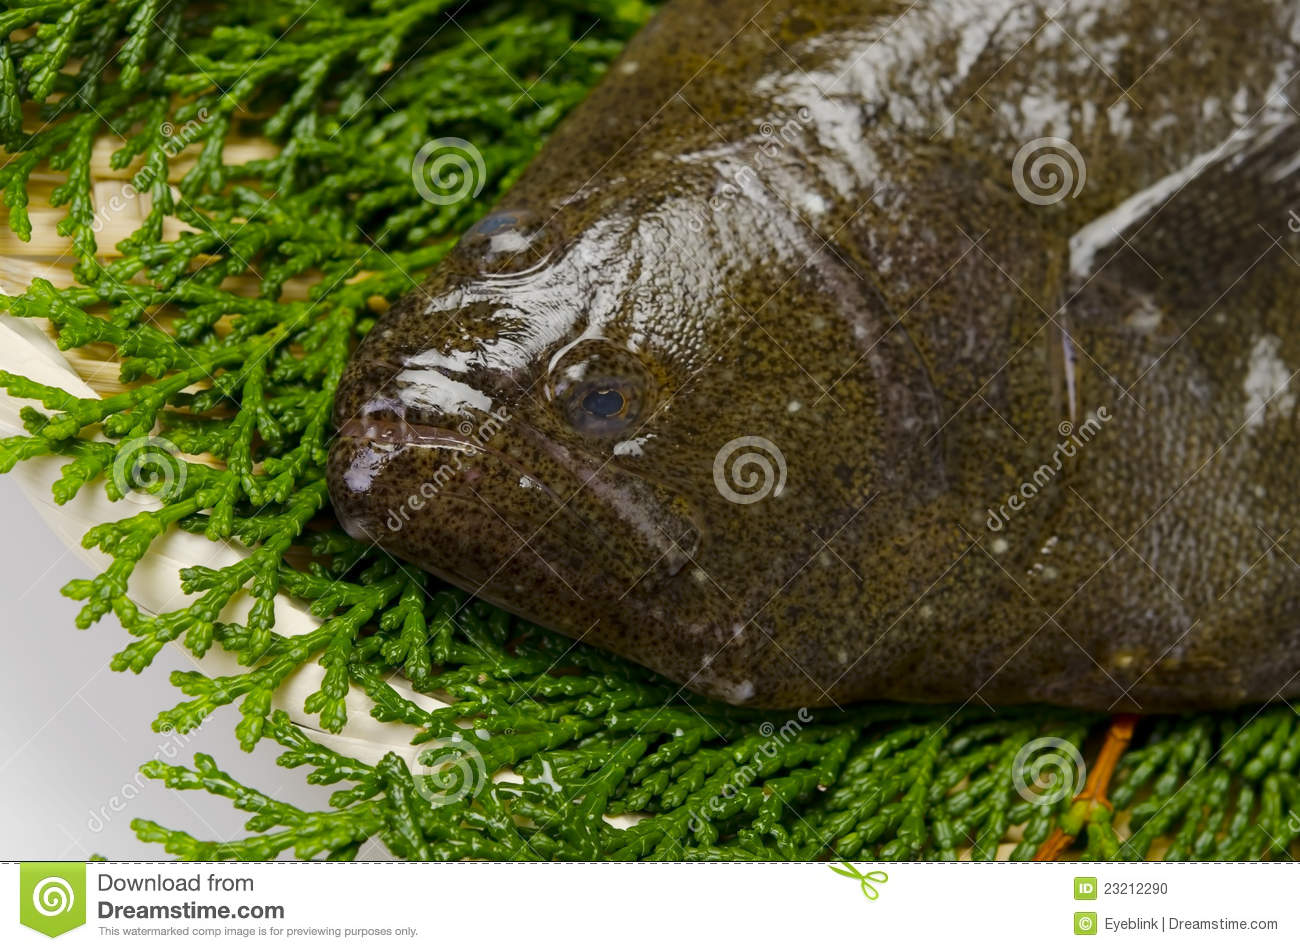 25 Series Flounder Photos Free Royalty Free Stock Photos From Dreamstime ··· olive flounder in the jeju island farms. 25 series flounder photos free royalty free stock photos from dreamstime